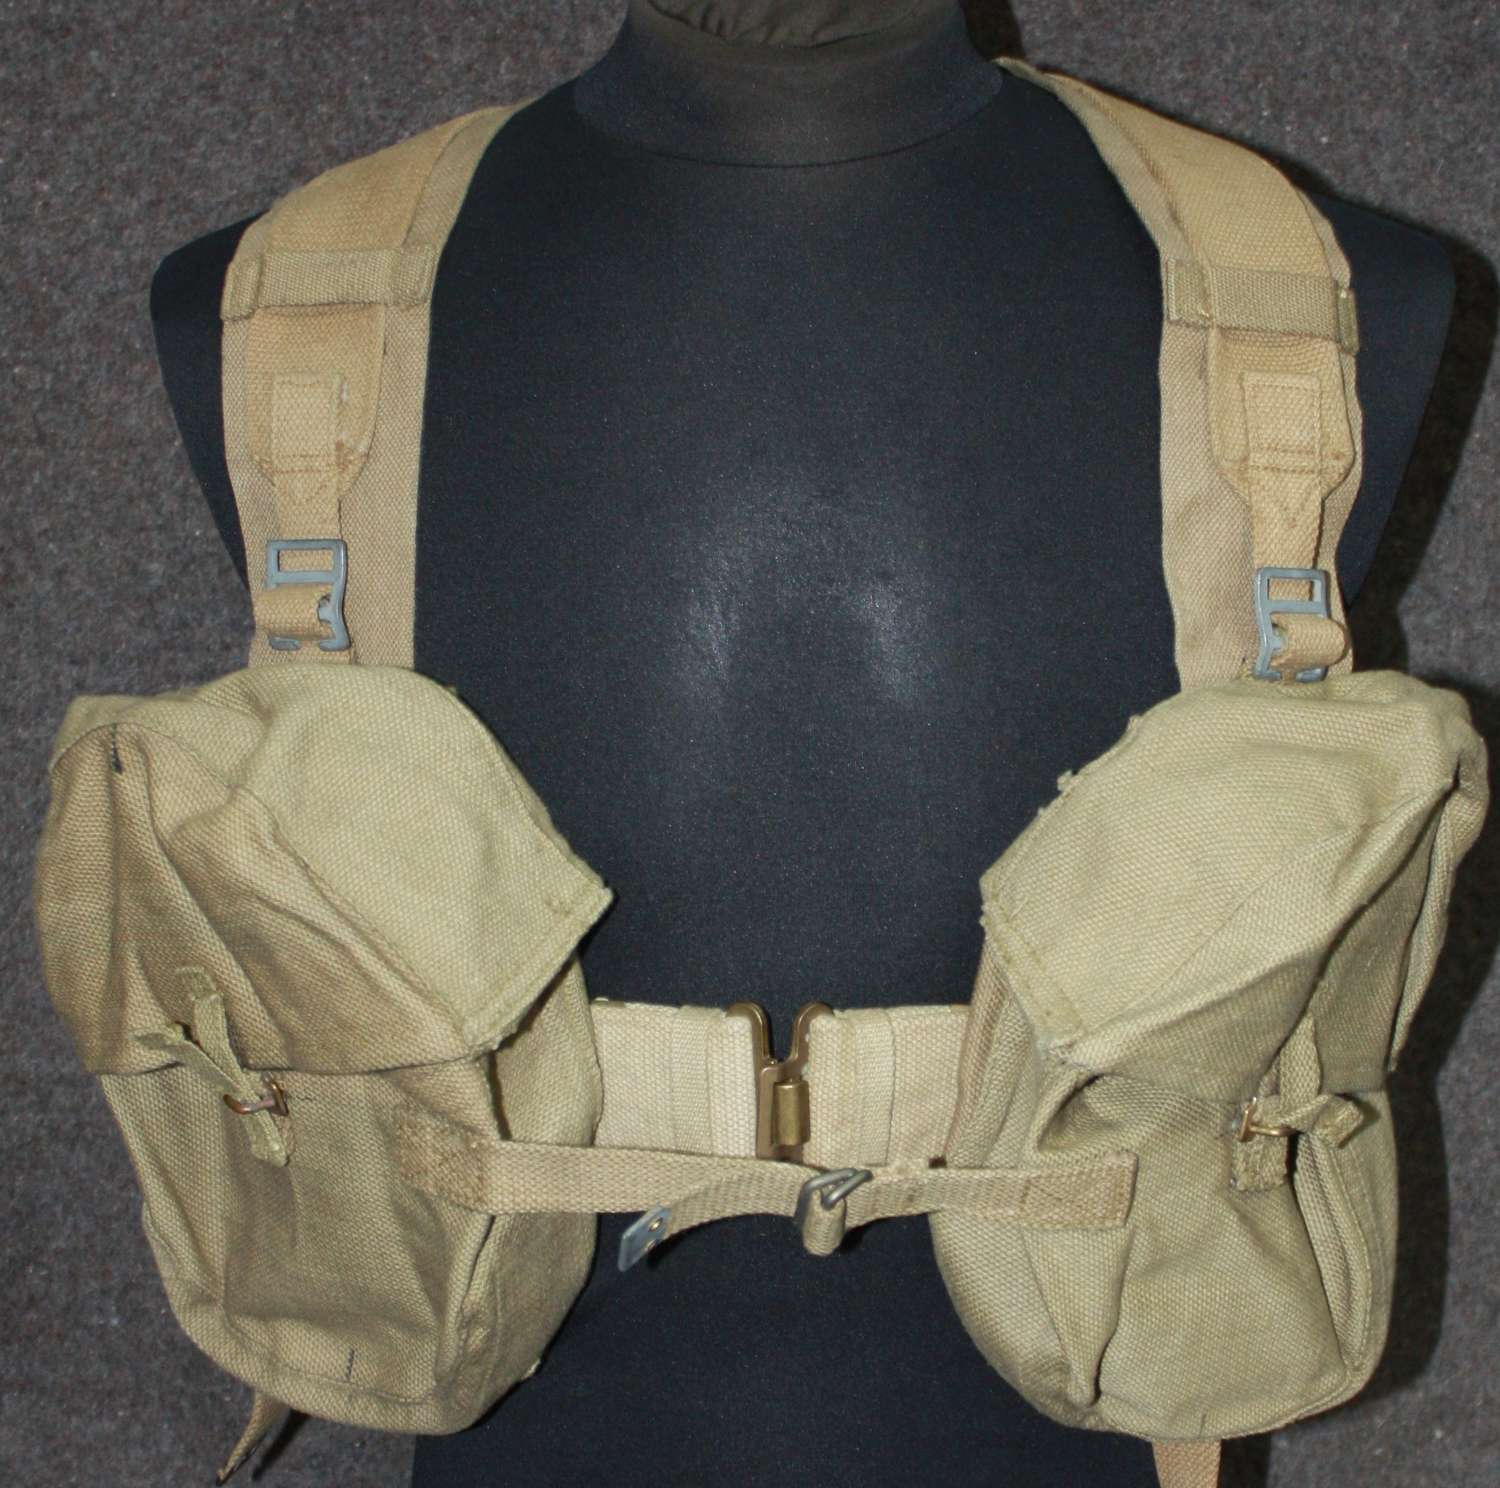 A GOOD COMPLETE K GUN AMMO POUCH SET ALL WWII DATED ITEMS